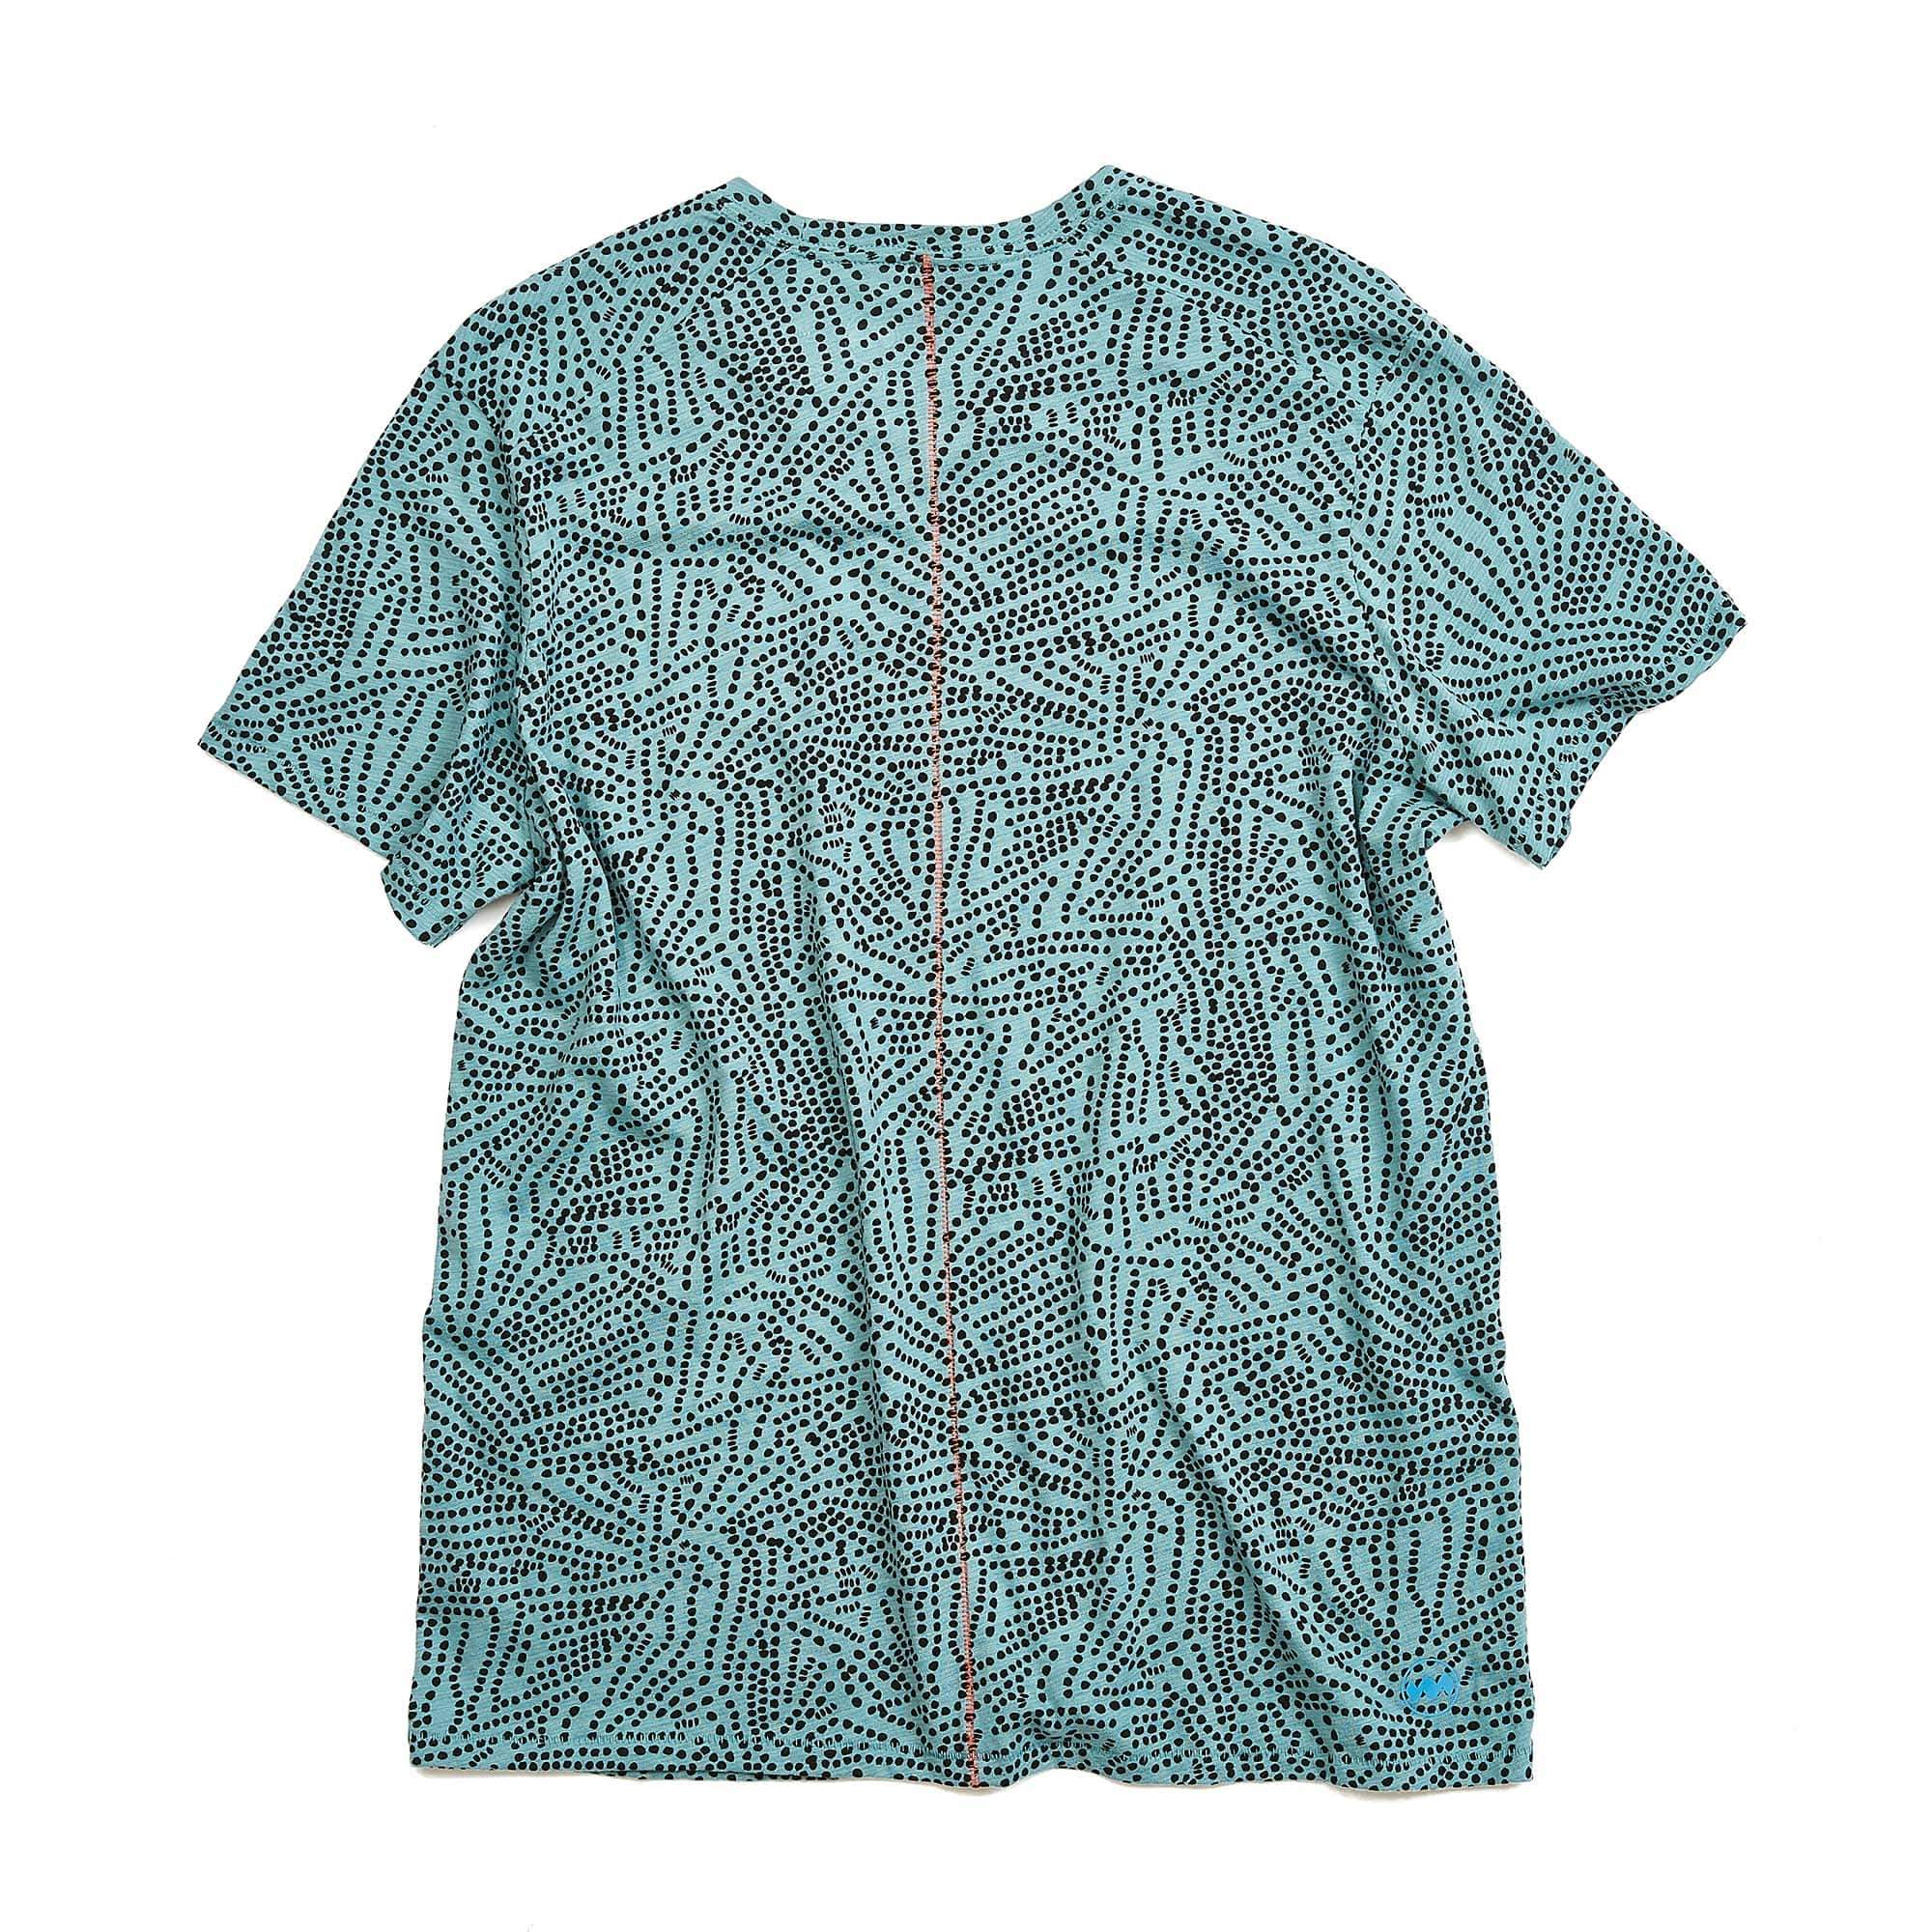 Janji | Runpaca Short Sleeve in Patina Tok Dot